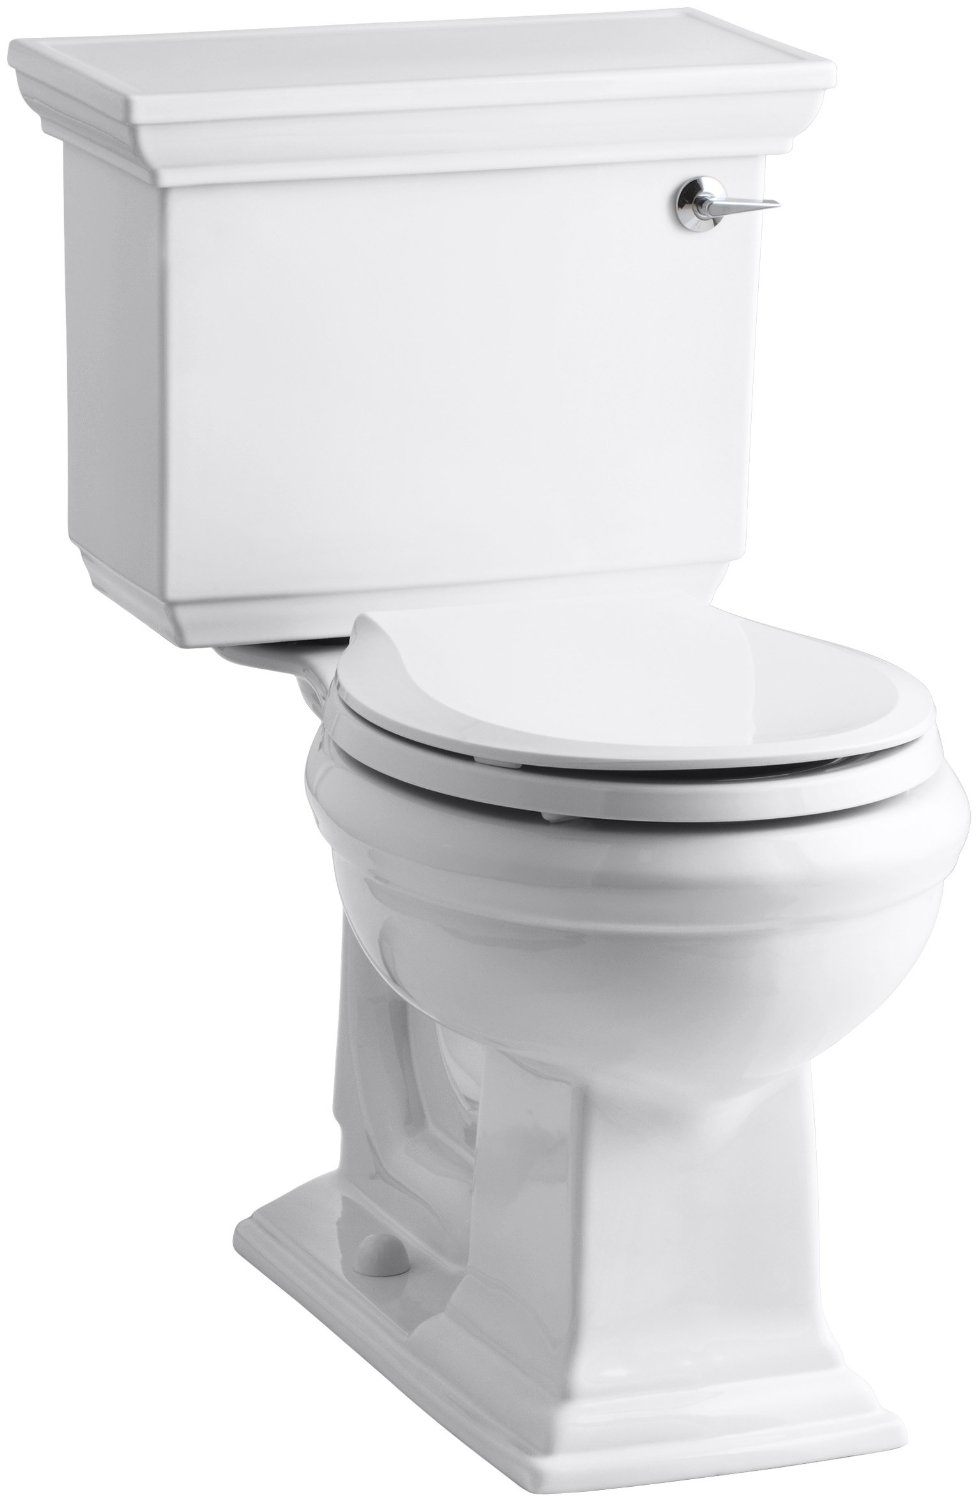 Kohler Memoir Comfort Height